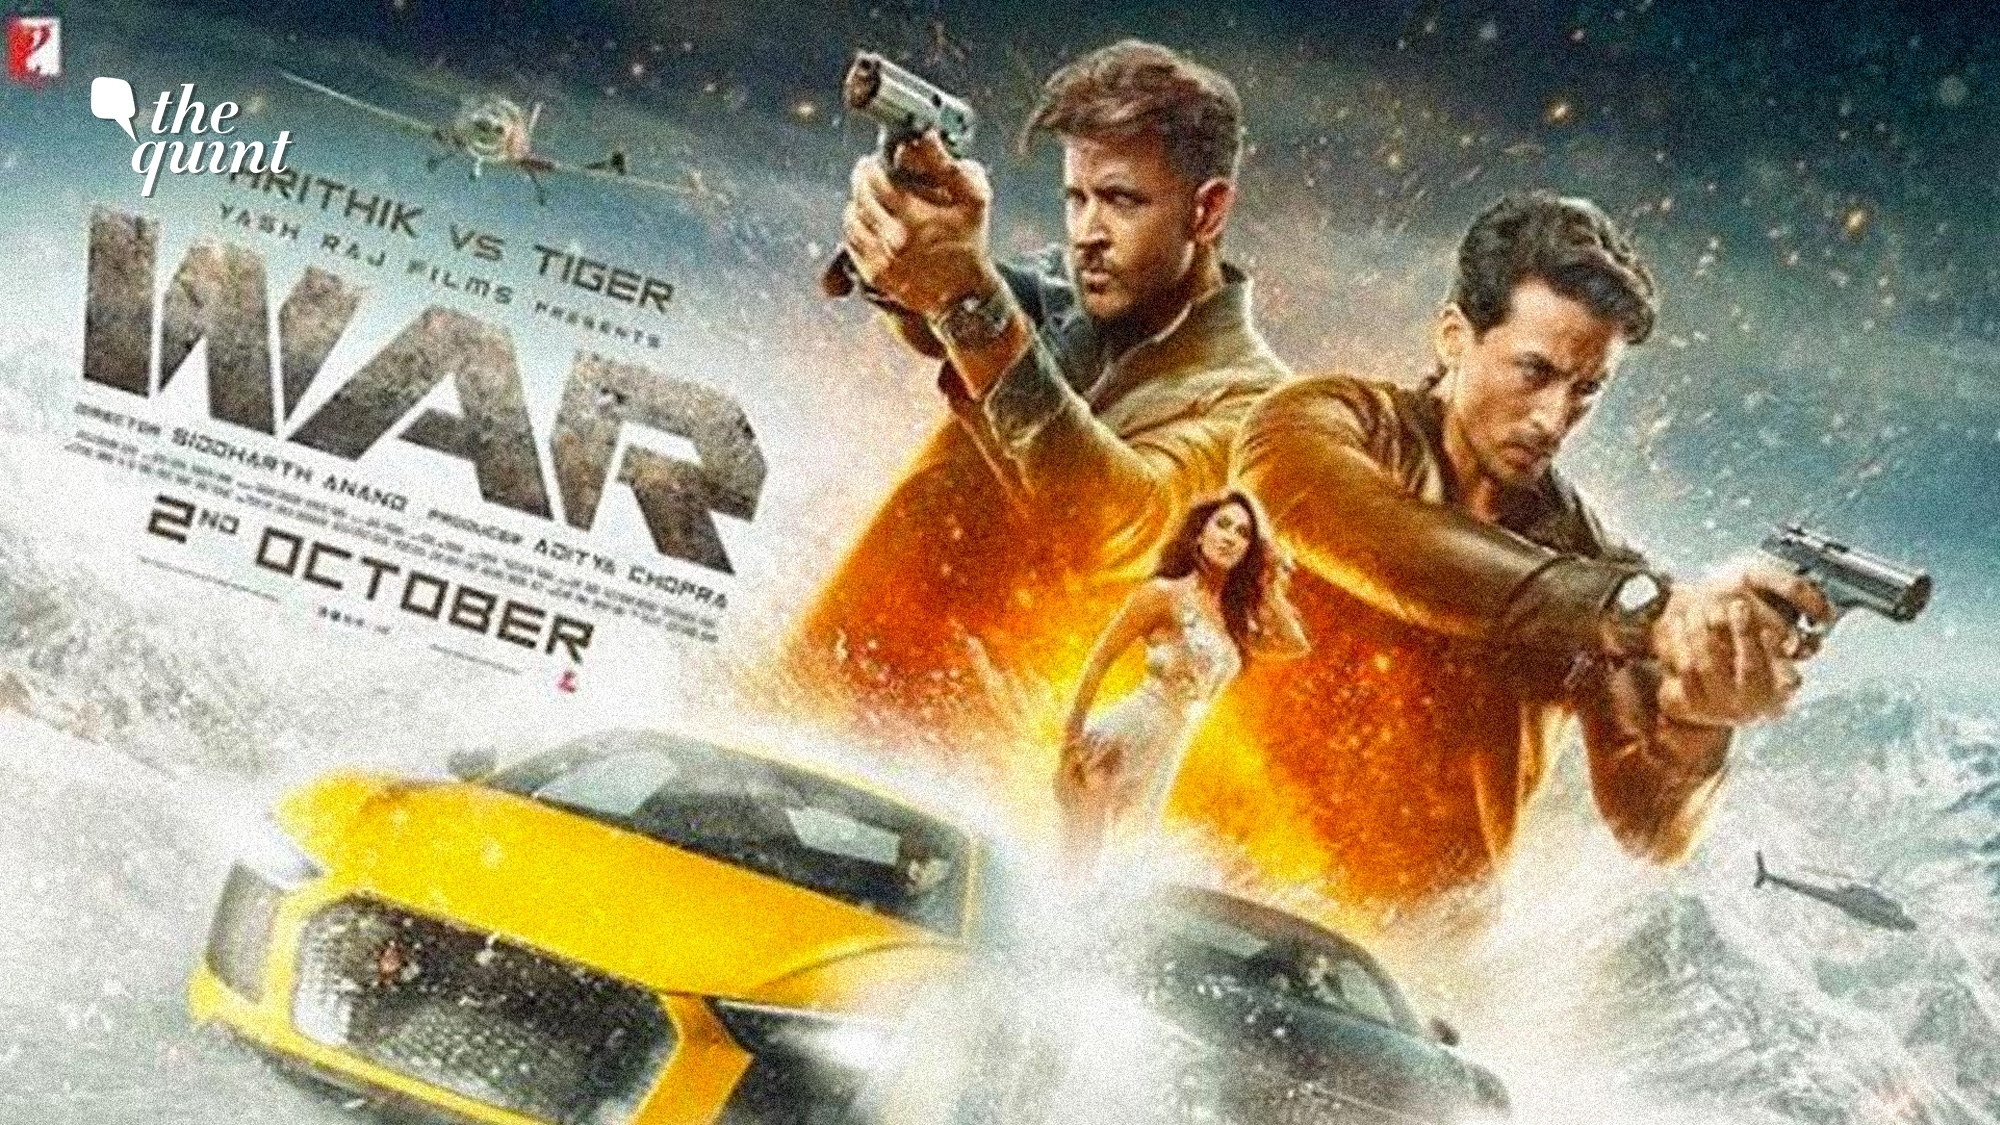 'War' Honest Movie Review: Action & Confusion Go Hand in Hand